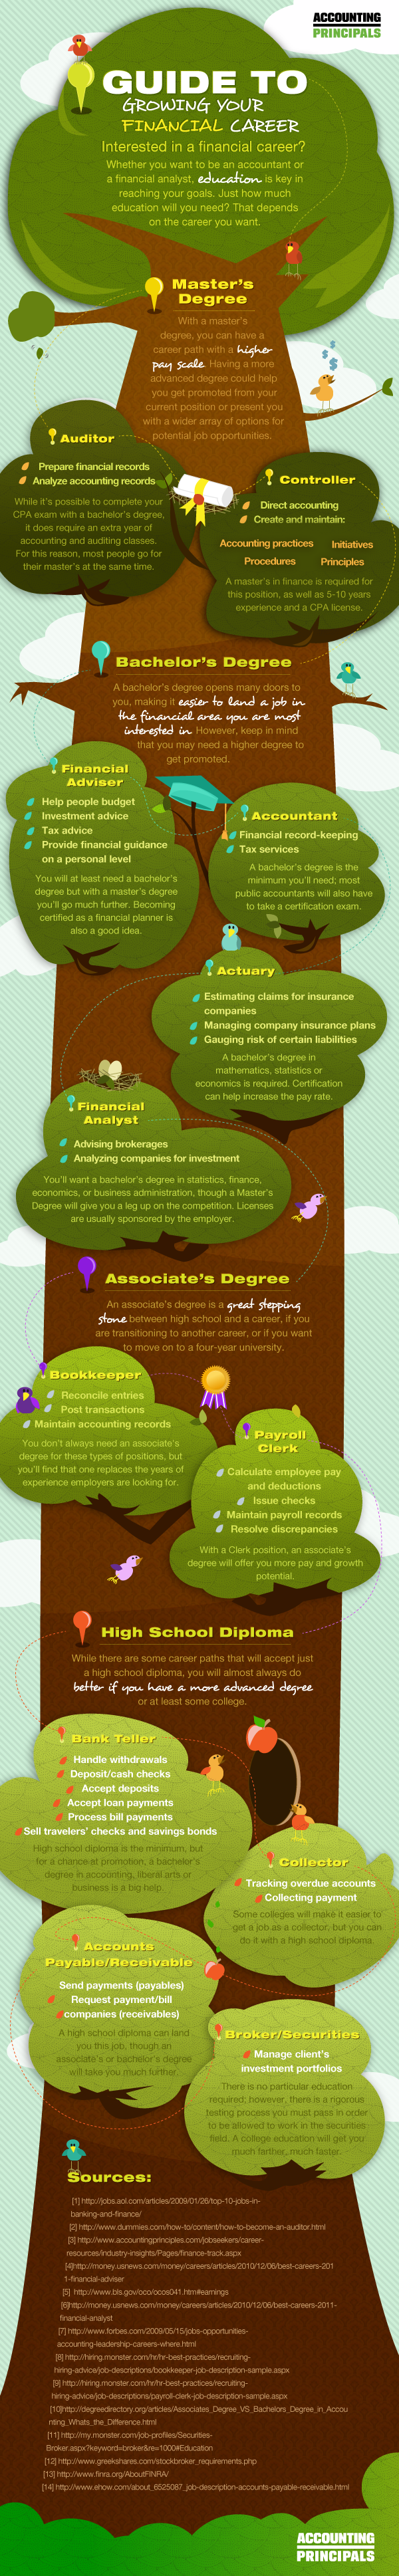 growing your financial career